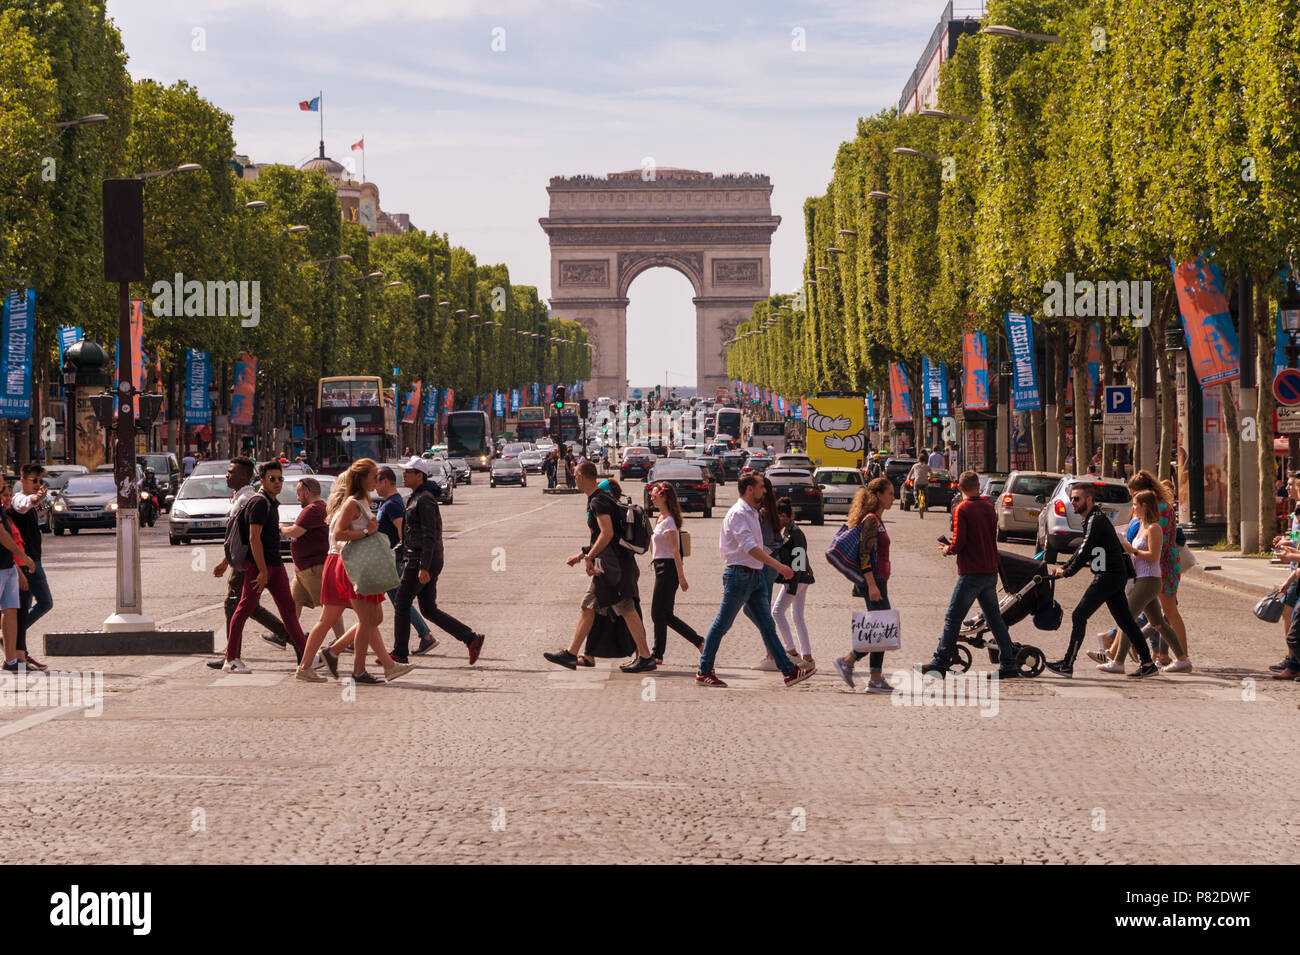 Paris, France - 23 June 2018: A crowd of people crossing Avenue des Champs-Elysees with Arc de Triomphe in the Background - Stock Image